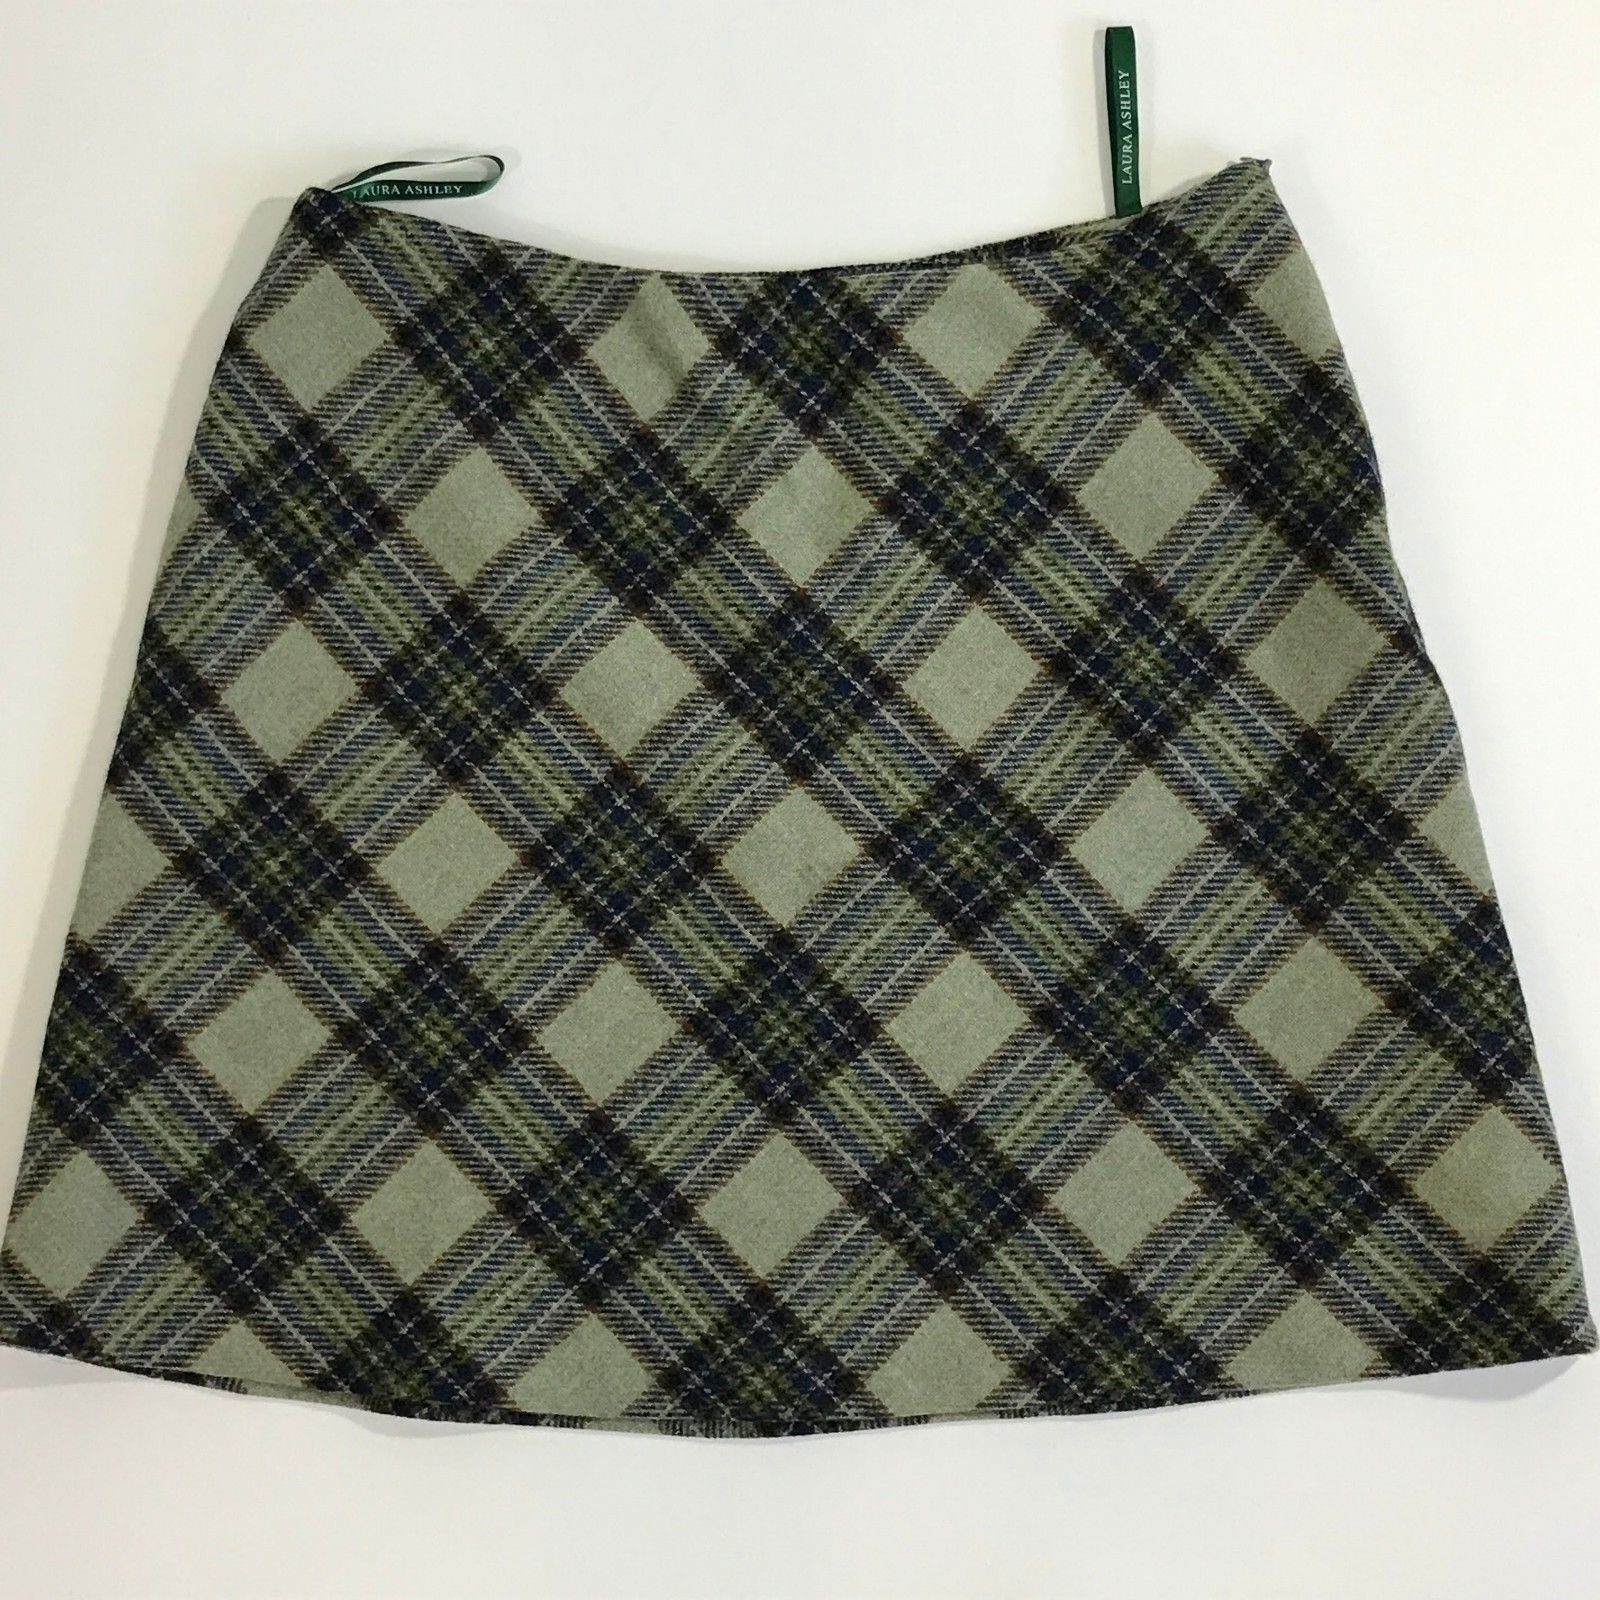 Laura Ashley US Size 14 Green bluee Multi-color Plaid Wool Lined A-line Skirt